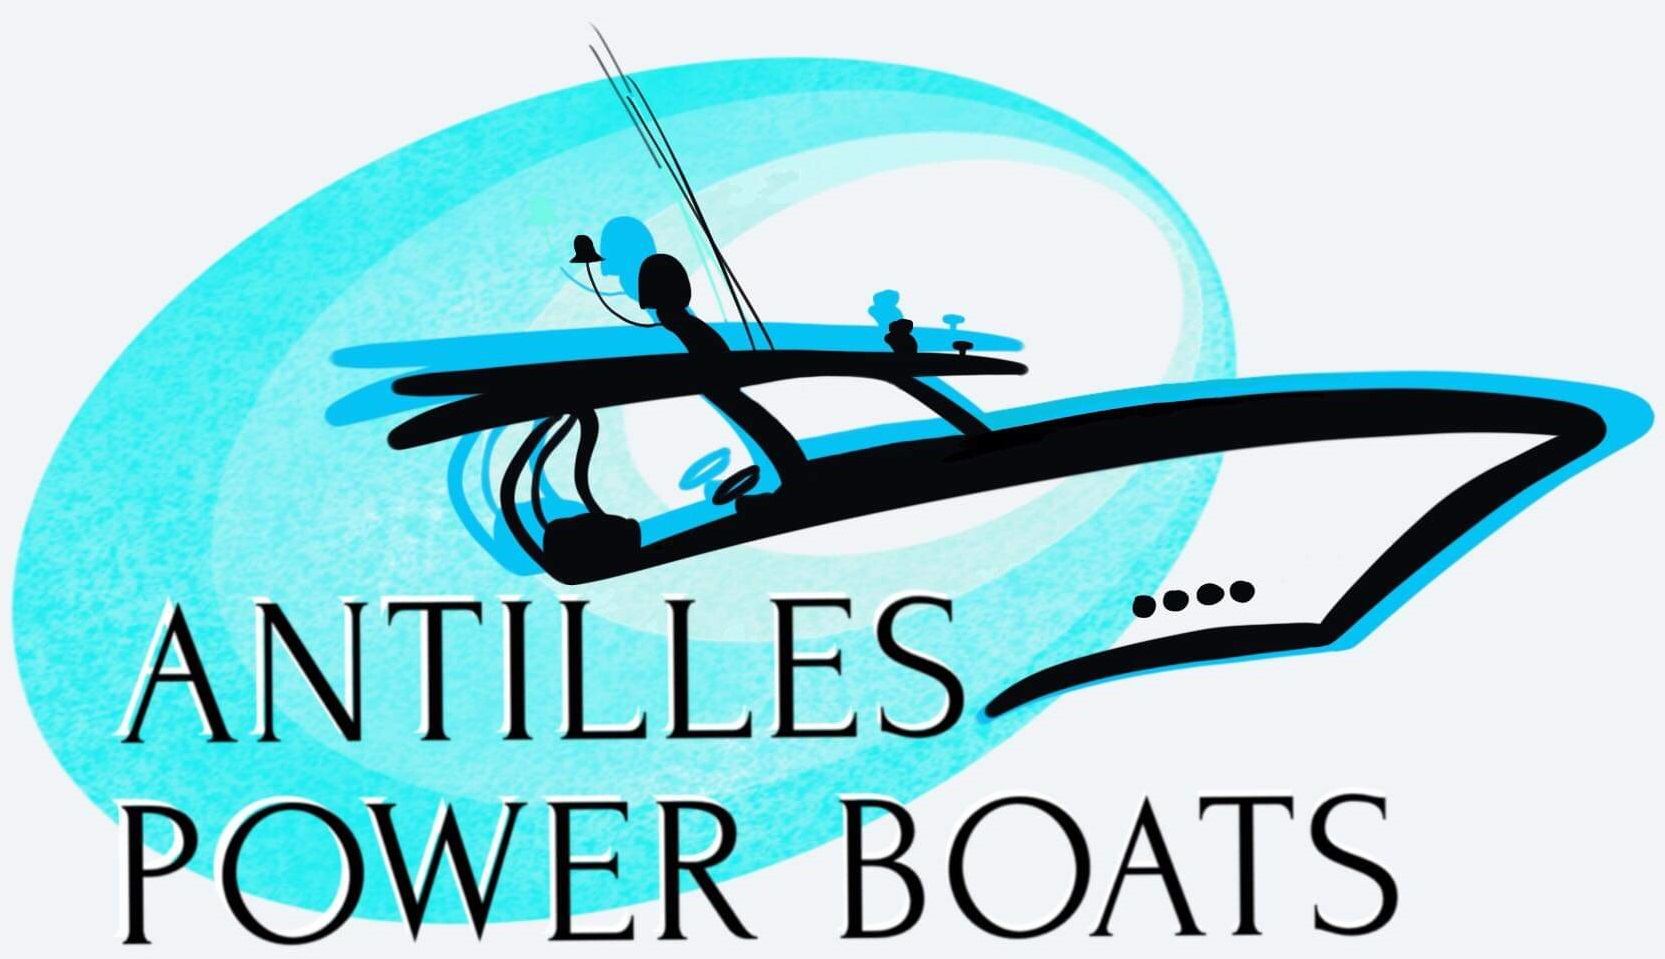 Antilles Power Boats